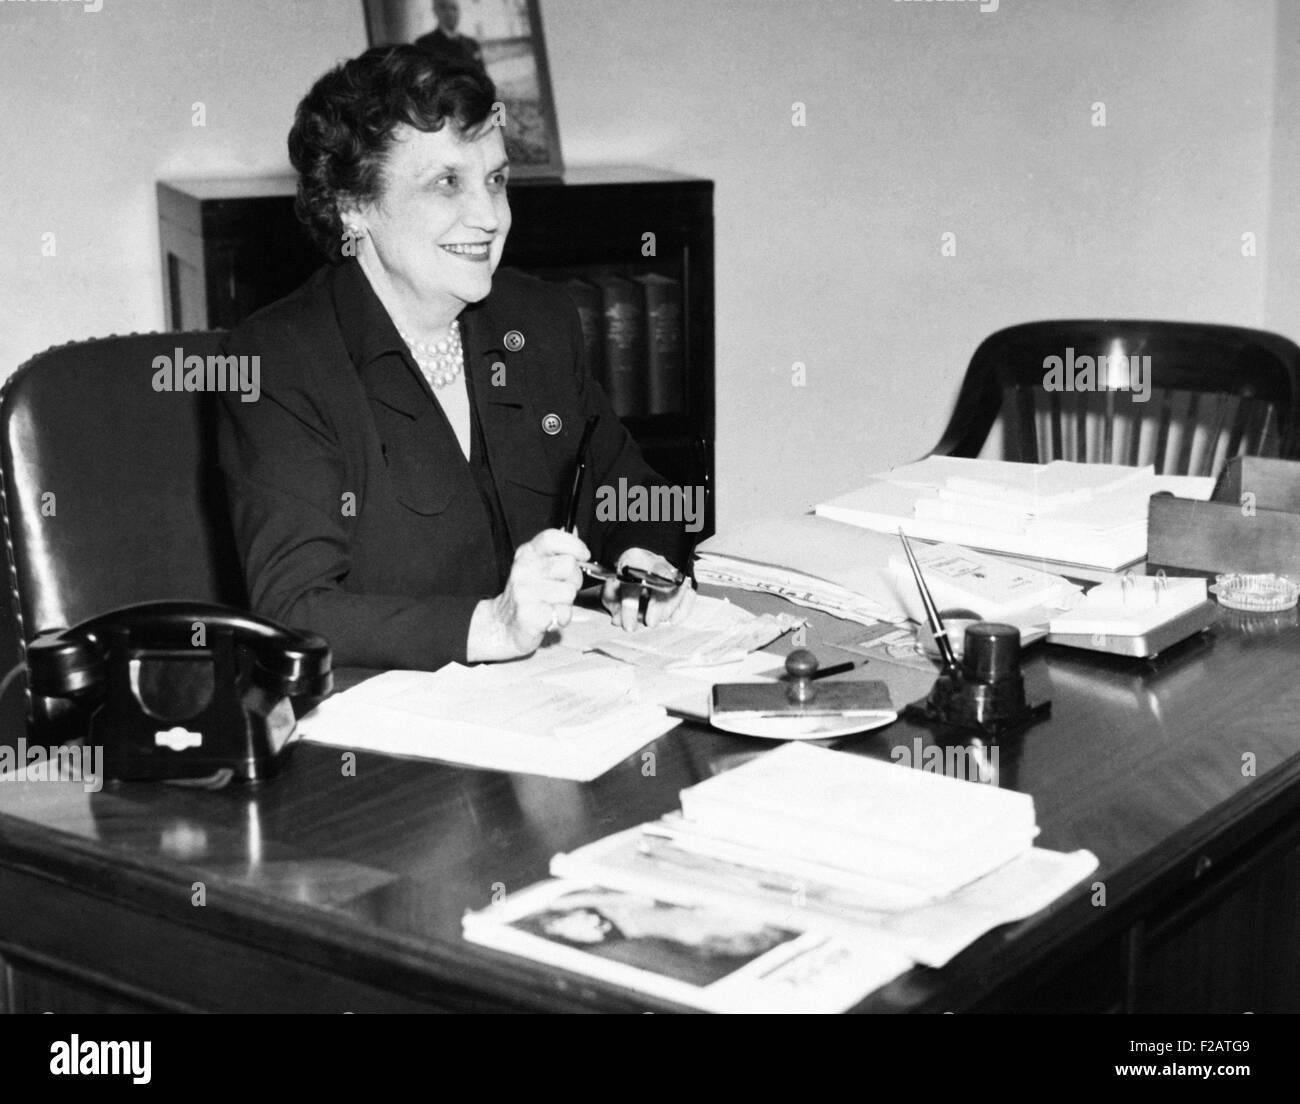 Pearl Mesta, Washington, D.C. political hostess, at her desk, ca. 1949. In 1925, at age 36, she was widowed with - Stock Image